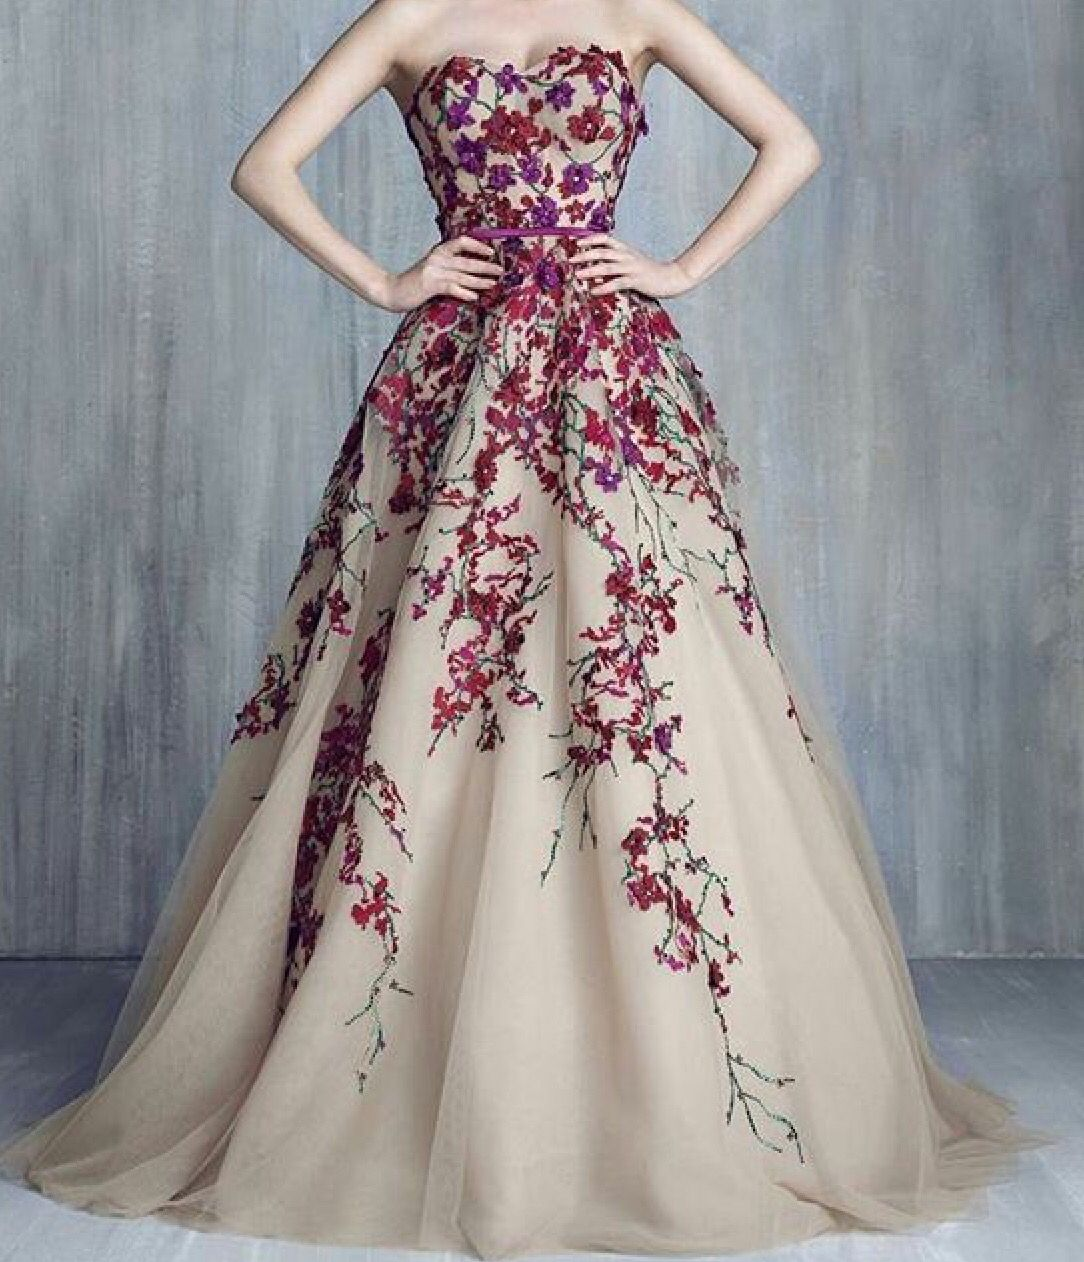 Pin by rasen saifi on Gowns and dresses | Pinterest | Robins and Gowns